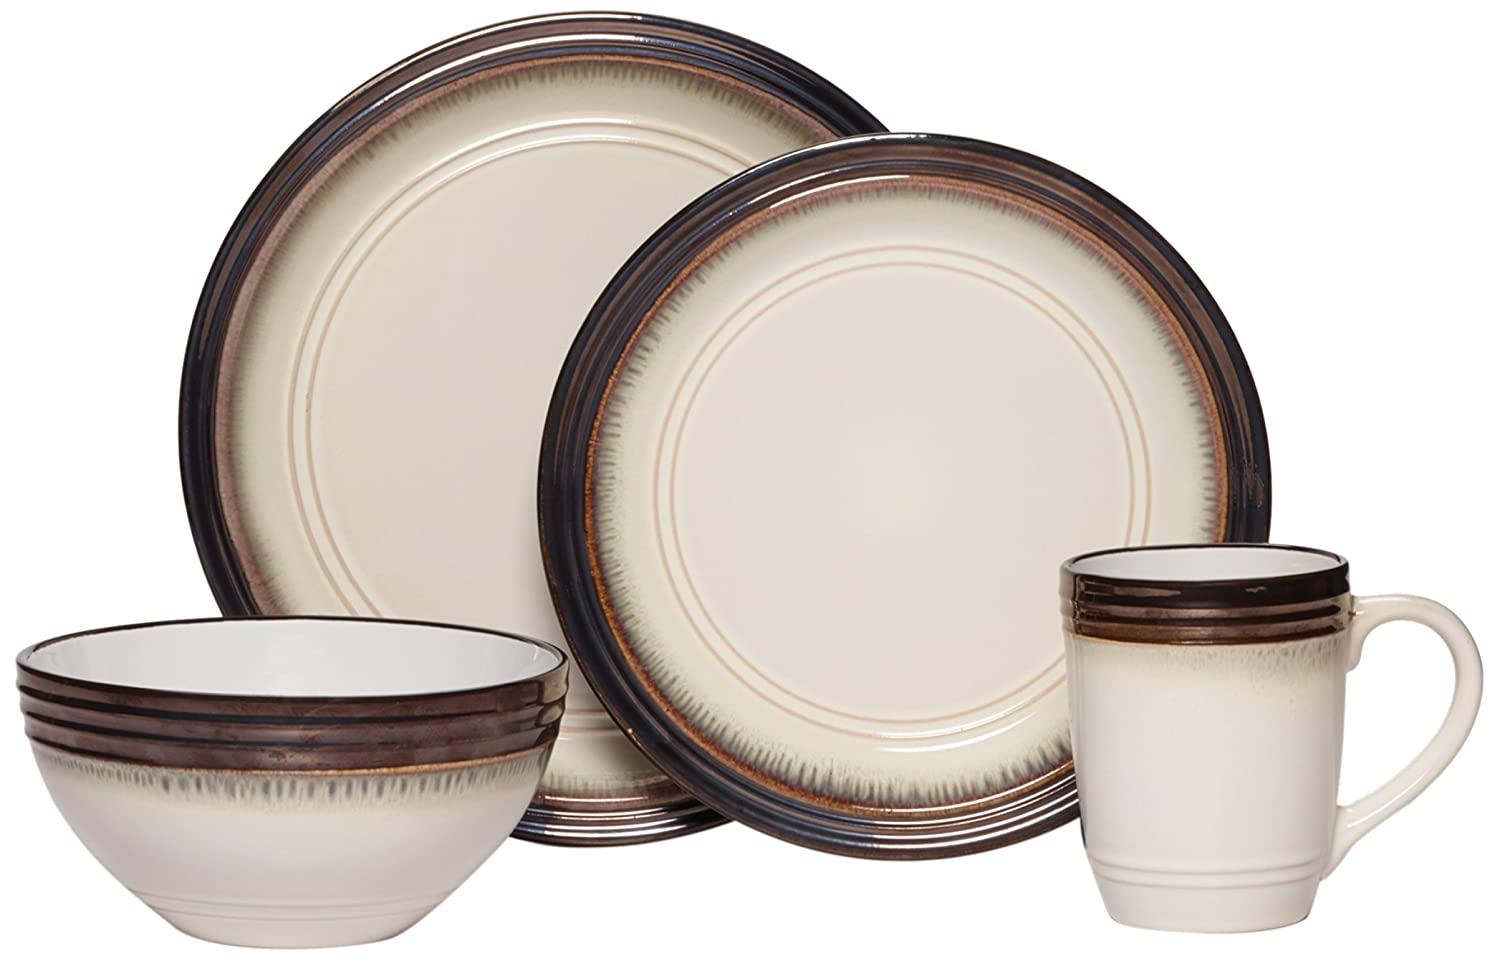 Amazon.com | Gourmet Basic by Mikasa Bailey 16-Piece Dinnerware Set Service for 4 Dinnerware Sets  sc 1 st  Amazon.com : gourmet basics by mikasa dinnerware - pezcame.com